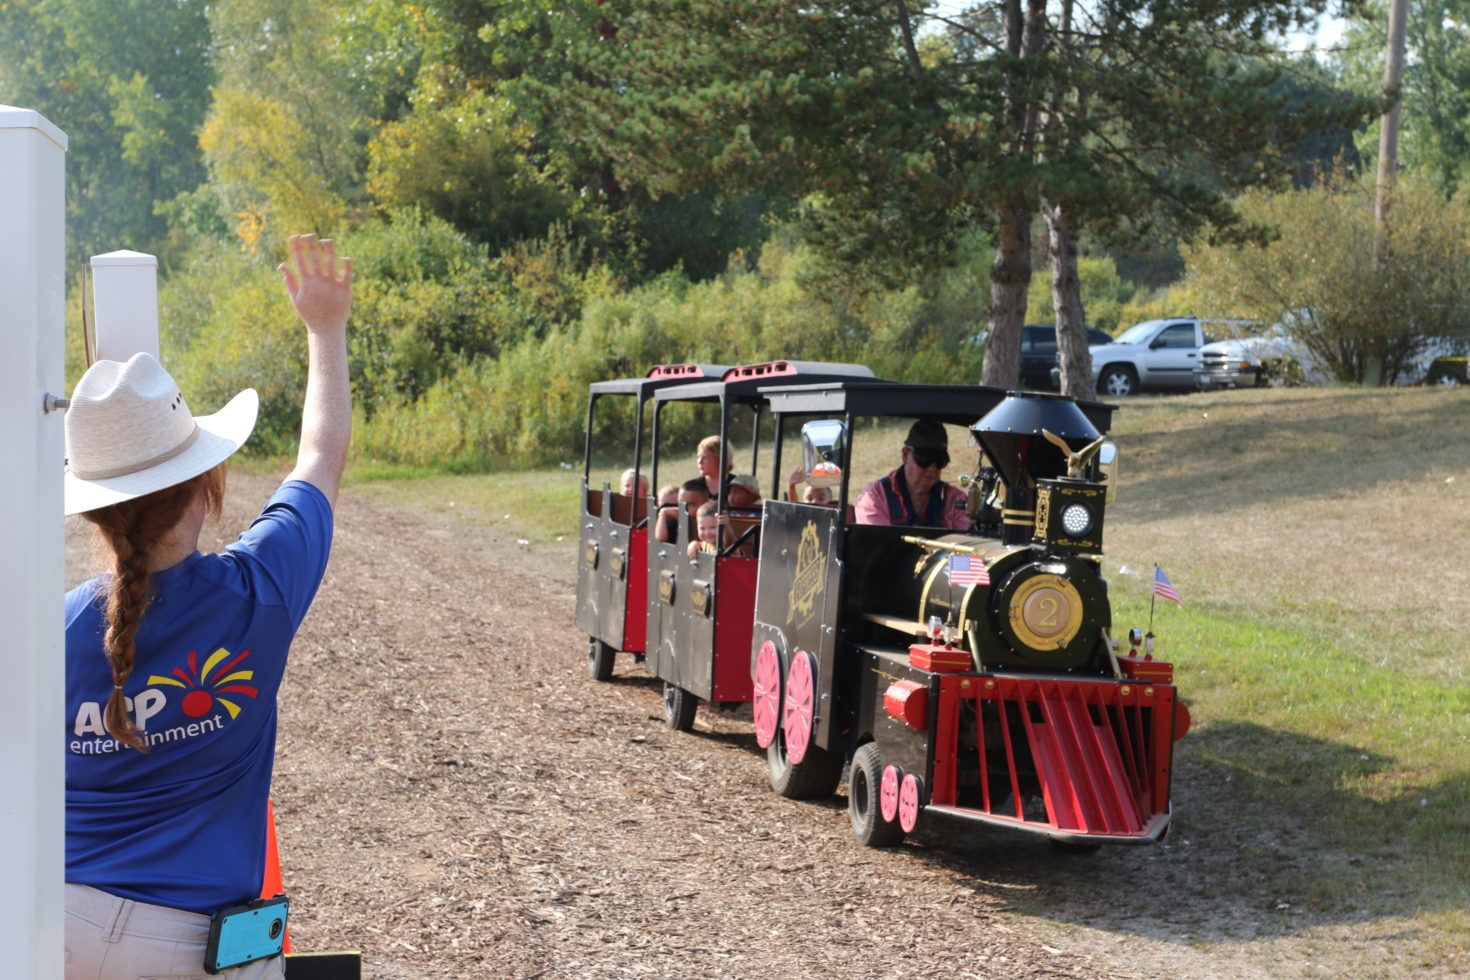 Conductor waiving to kids on train